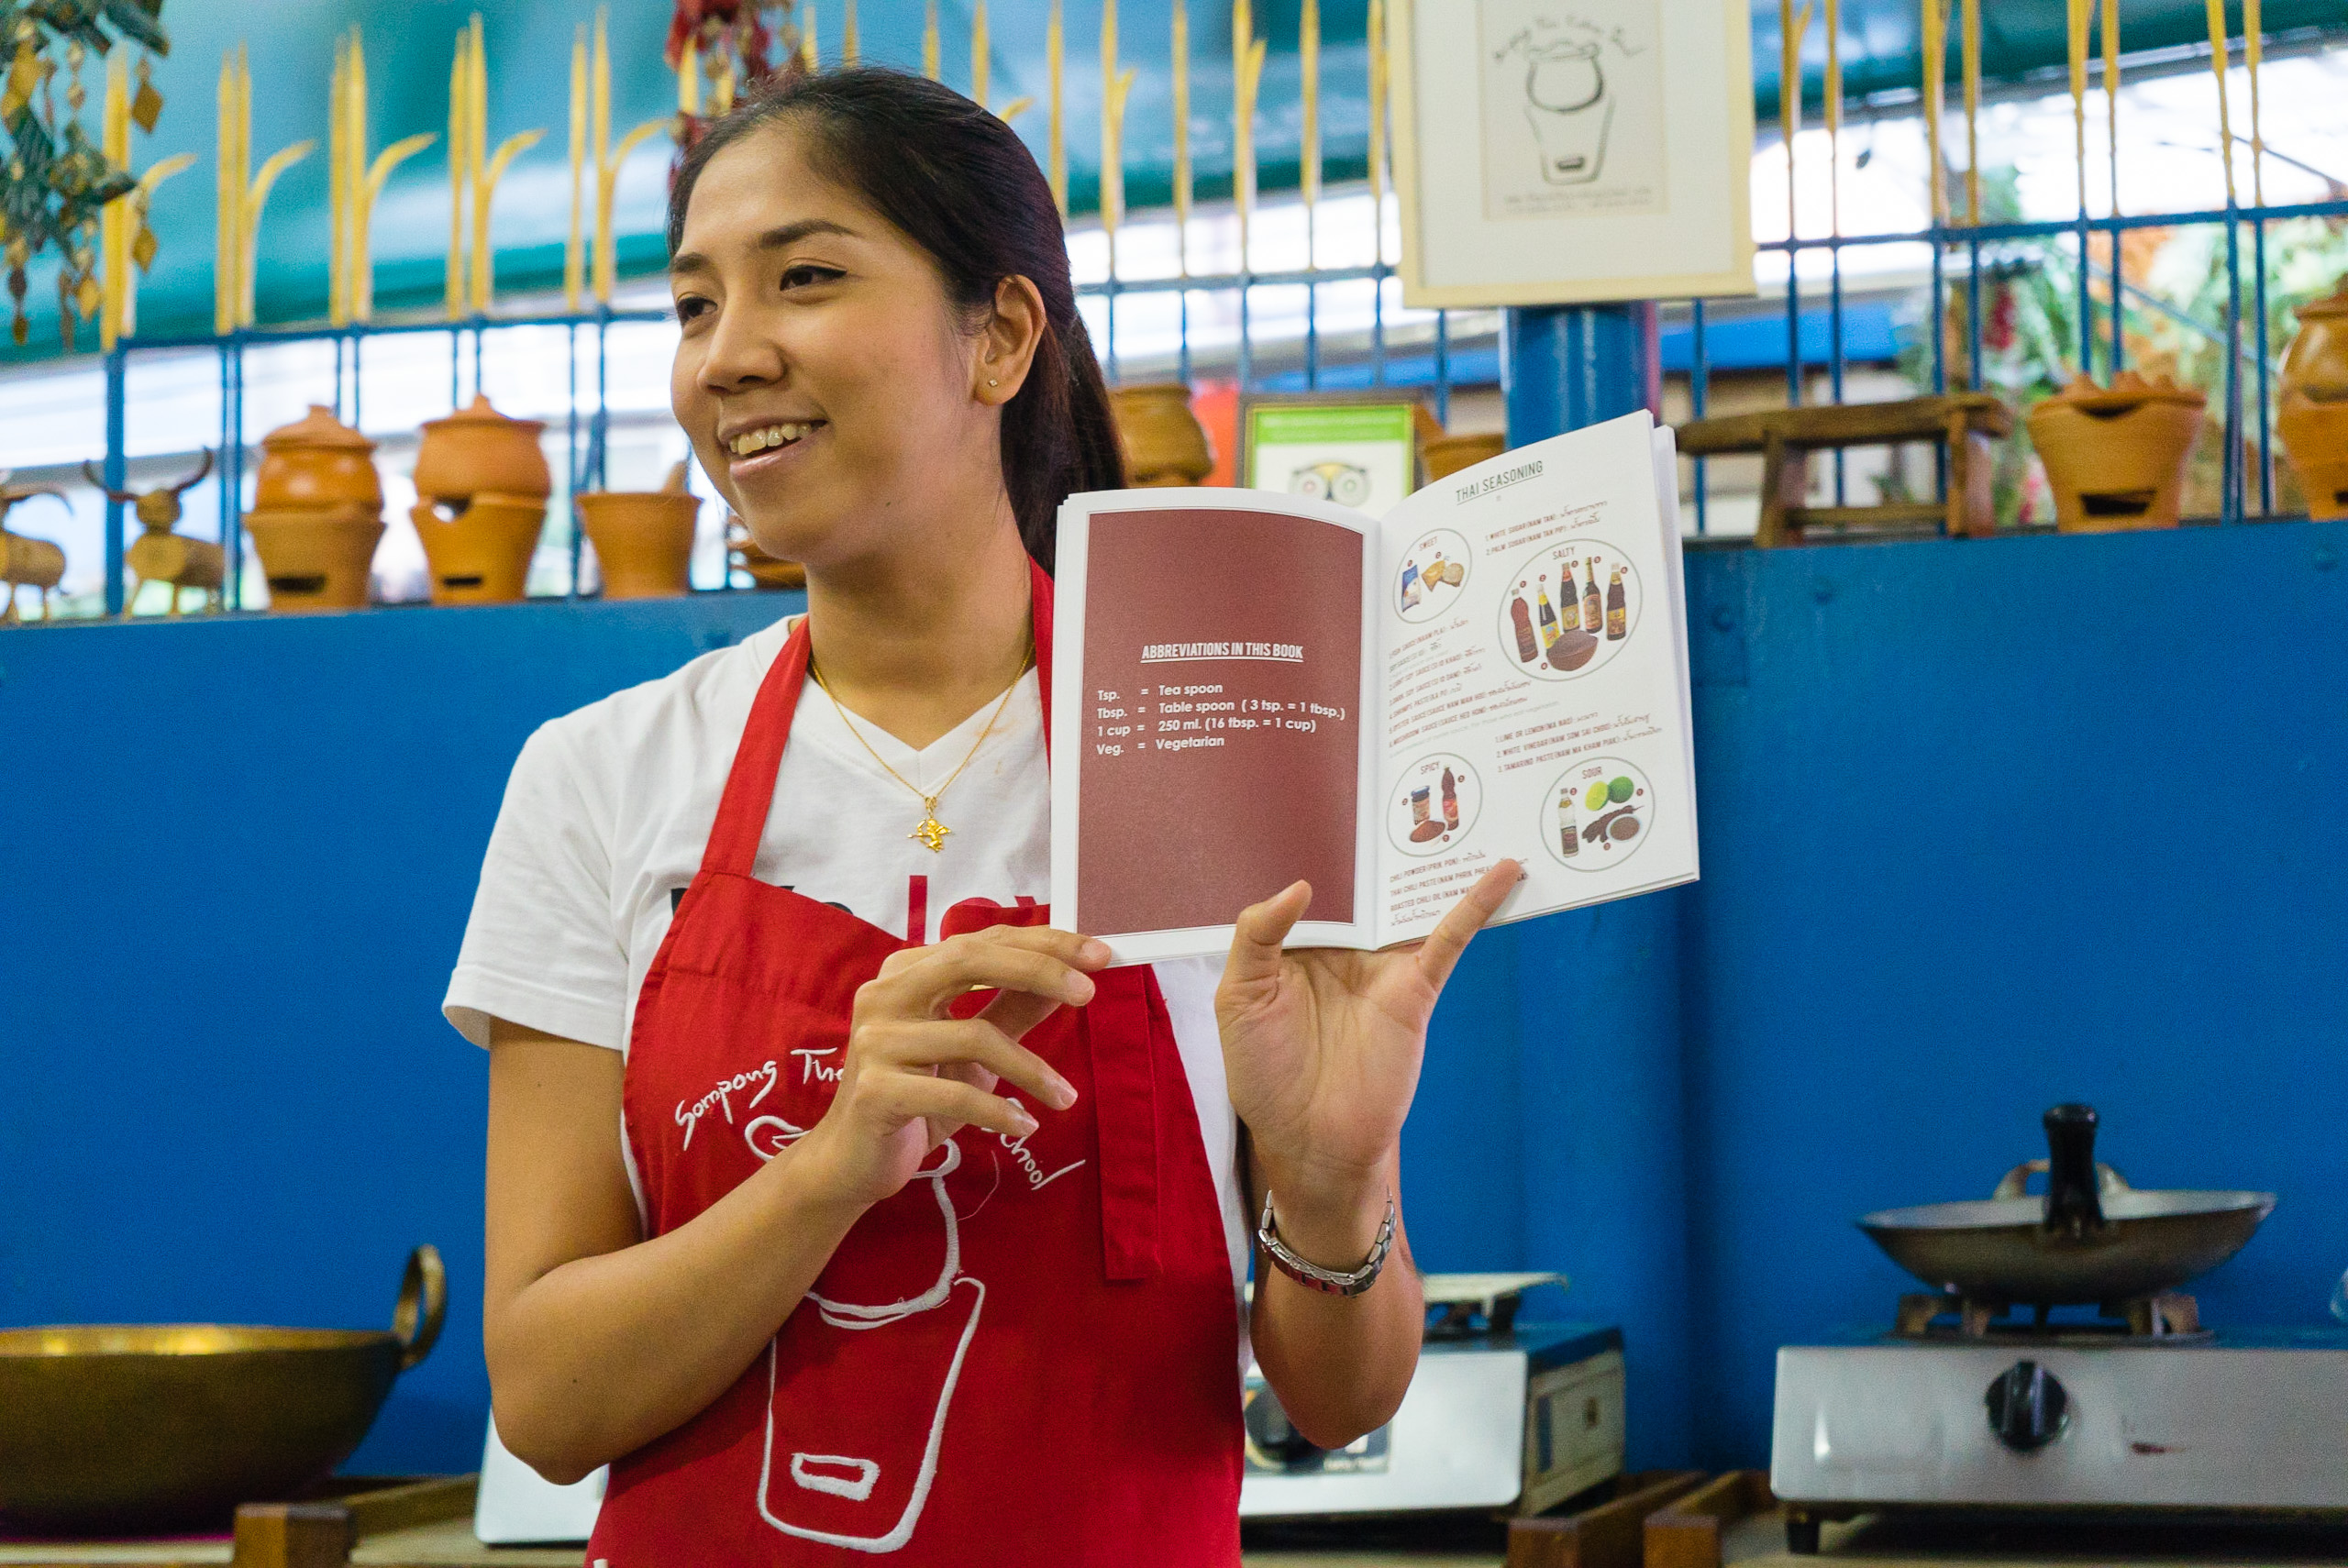 The best thai cooking class in bangkok sompong thai cooking school the best thai cooking class in bangkok sompong thai cooking school forumfinder Choice Image